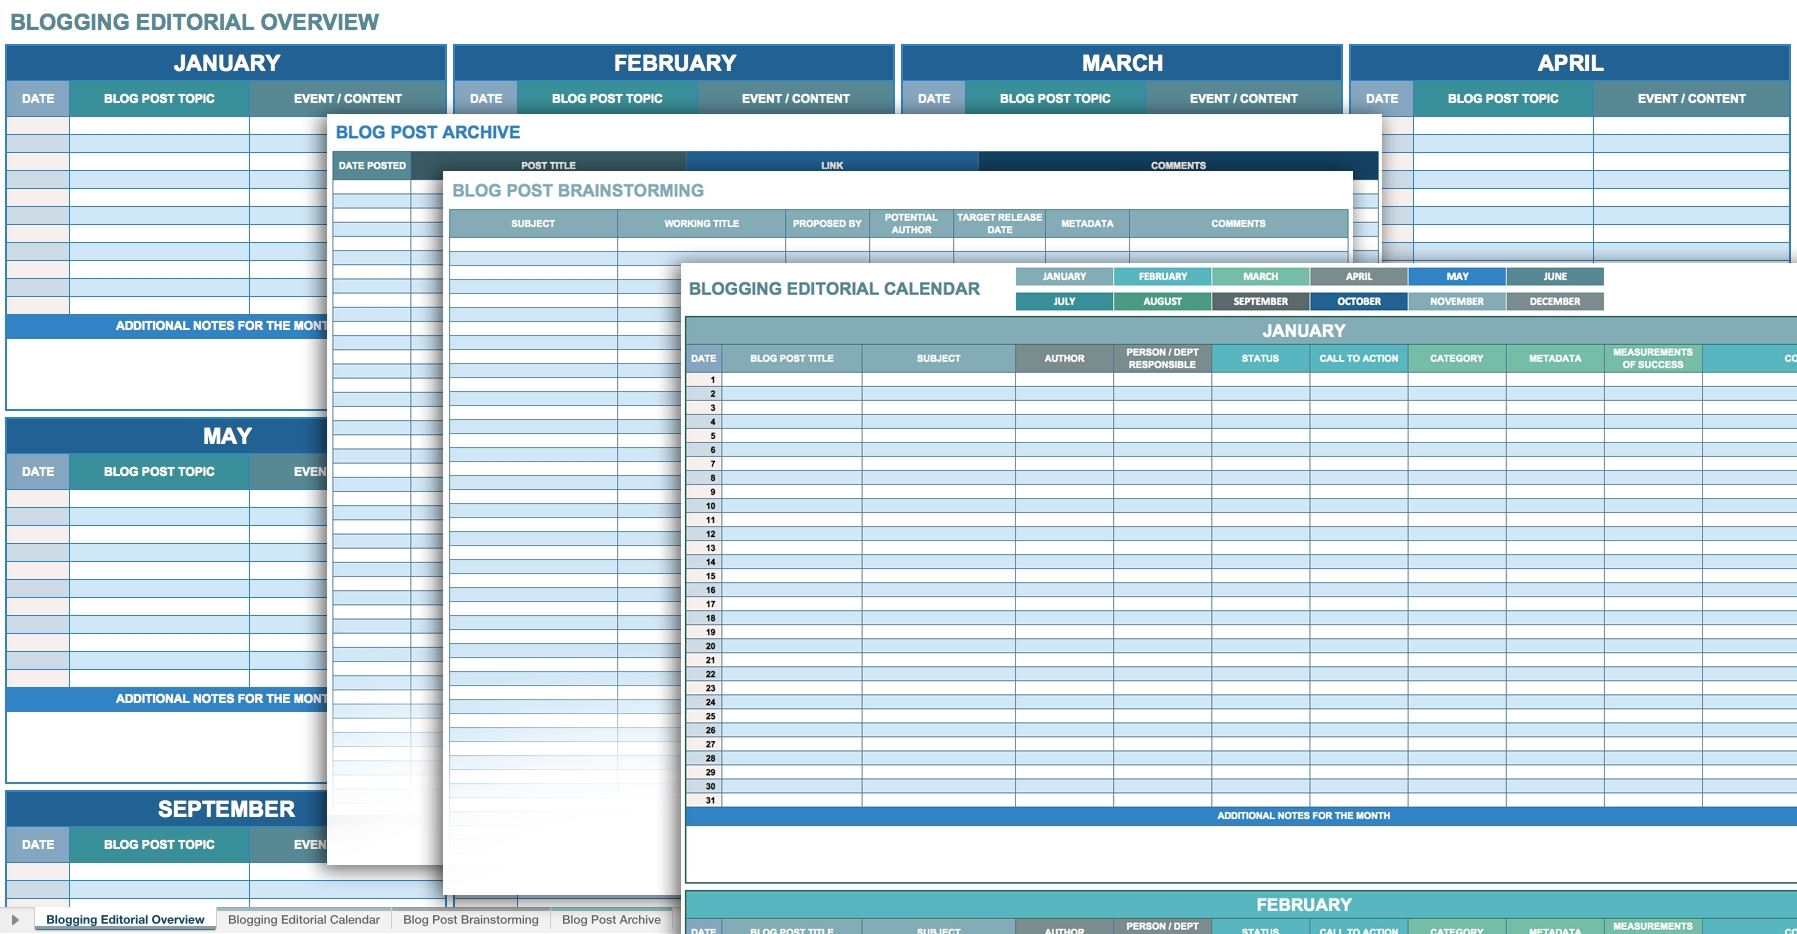 12 Free Social Media Templates | Smartsheet within Social Media Posting Schedule Template